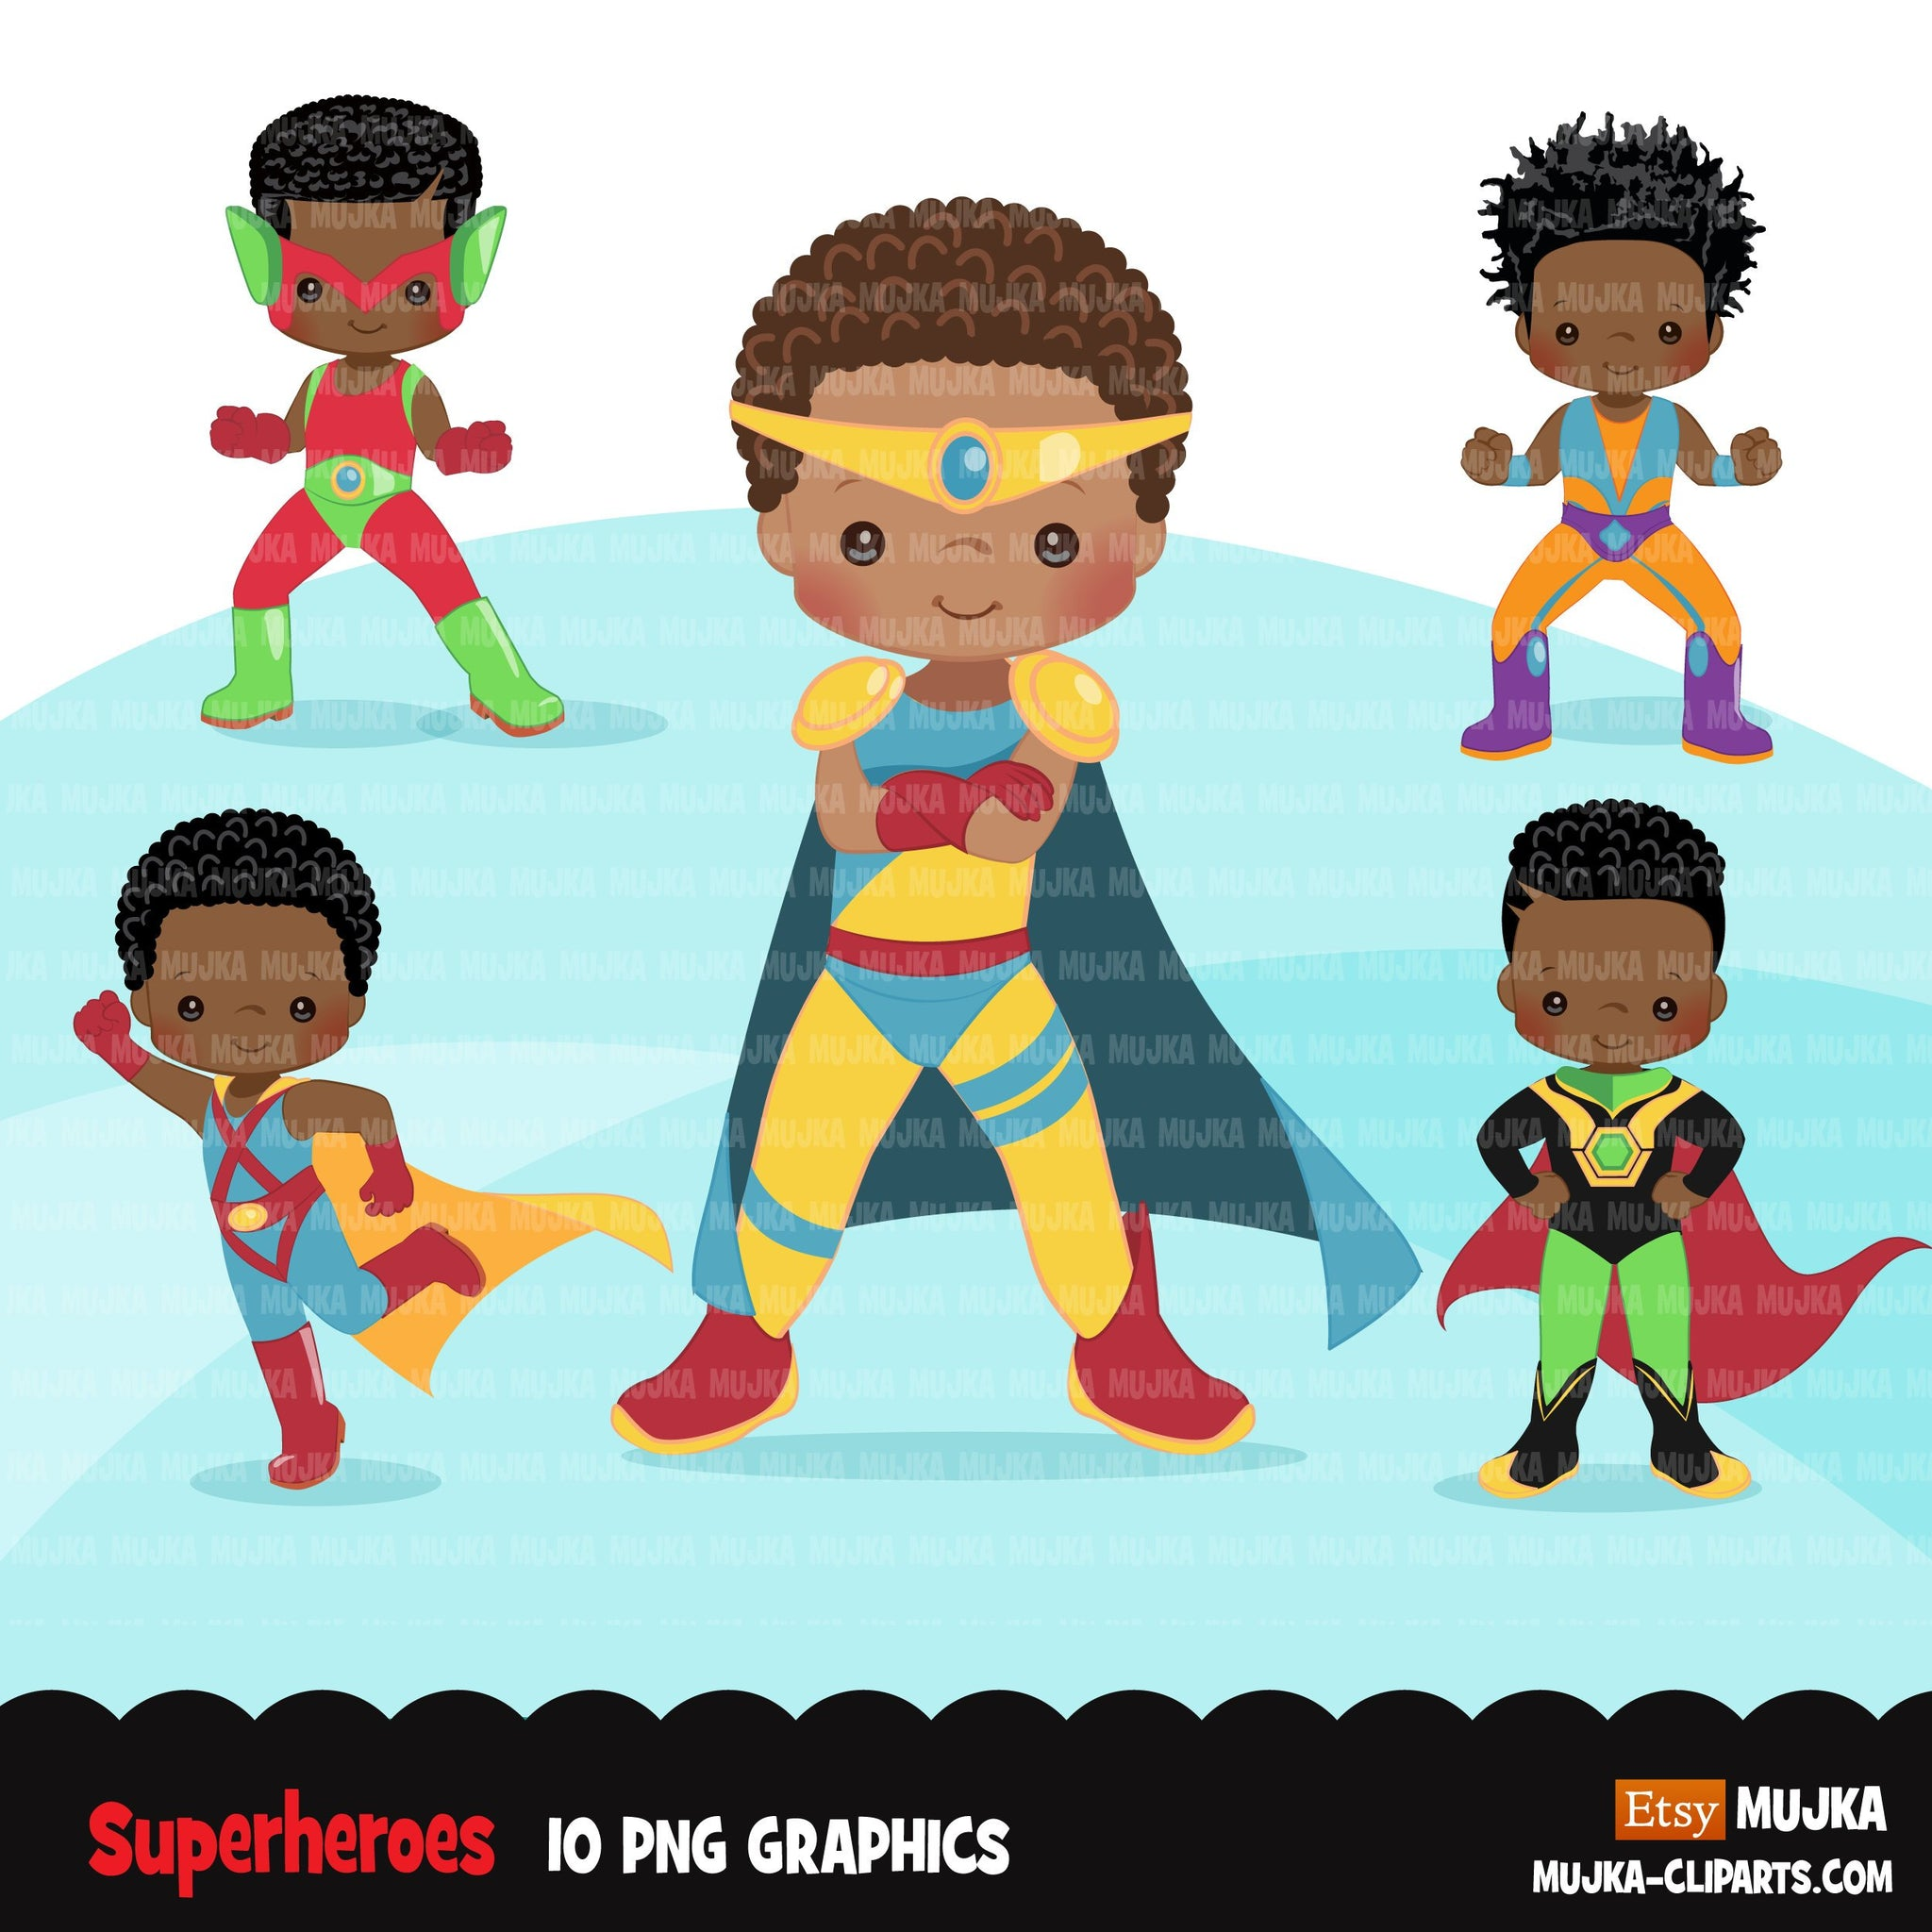 Superhero clipart, superboy hero sublimation graphics, black boys birthday party,PNG clip art